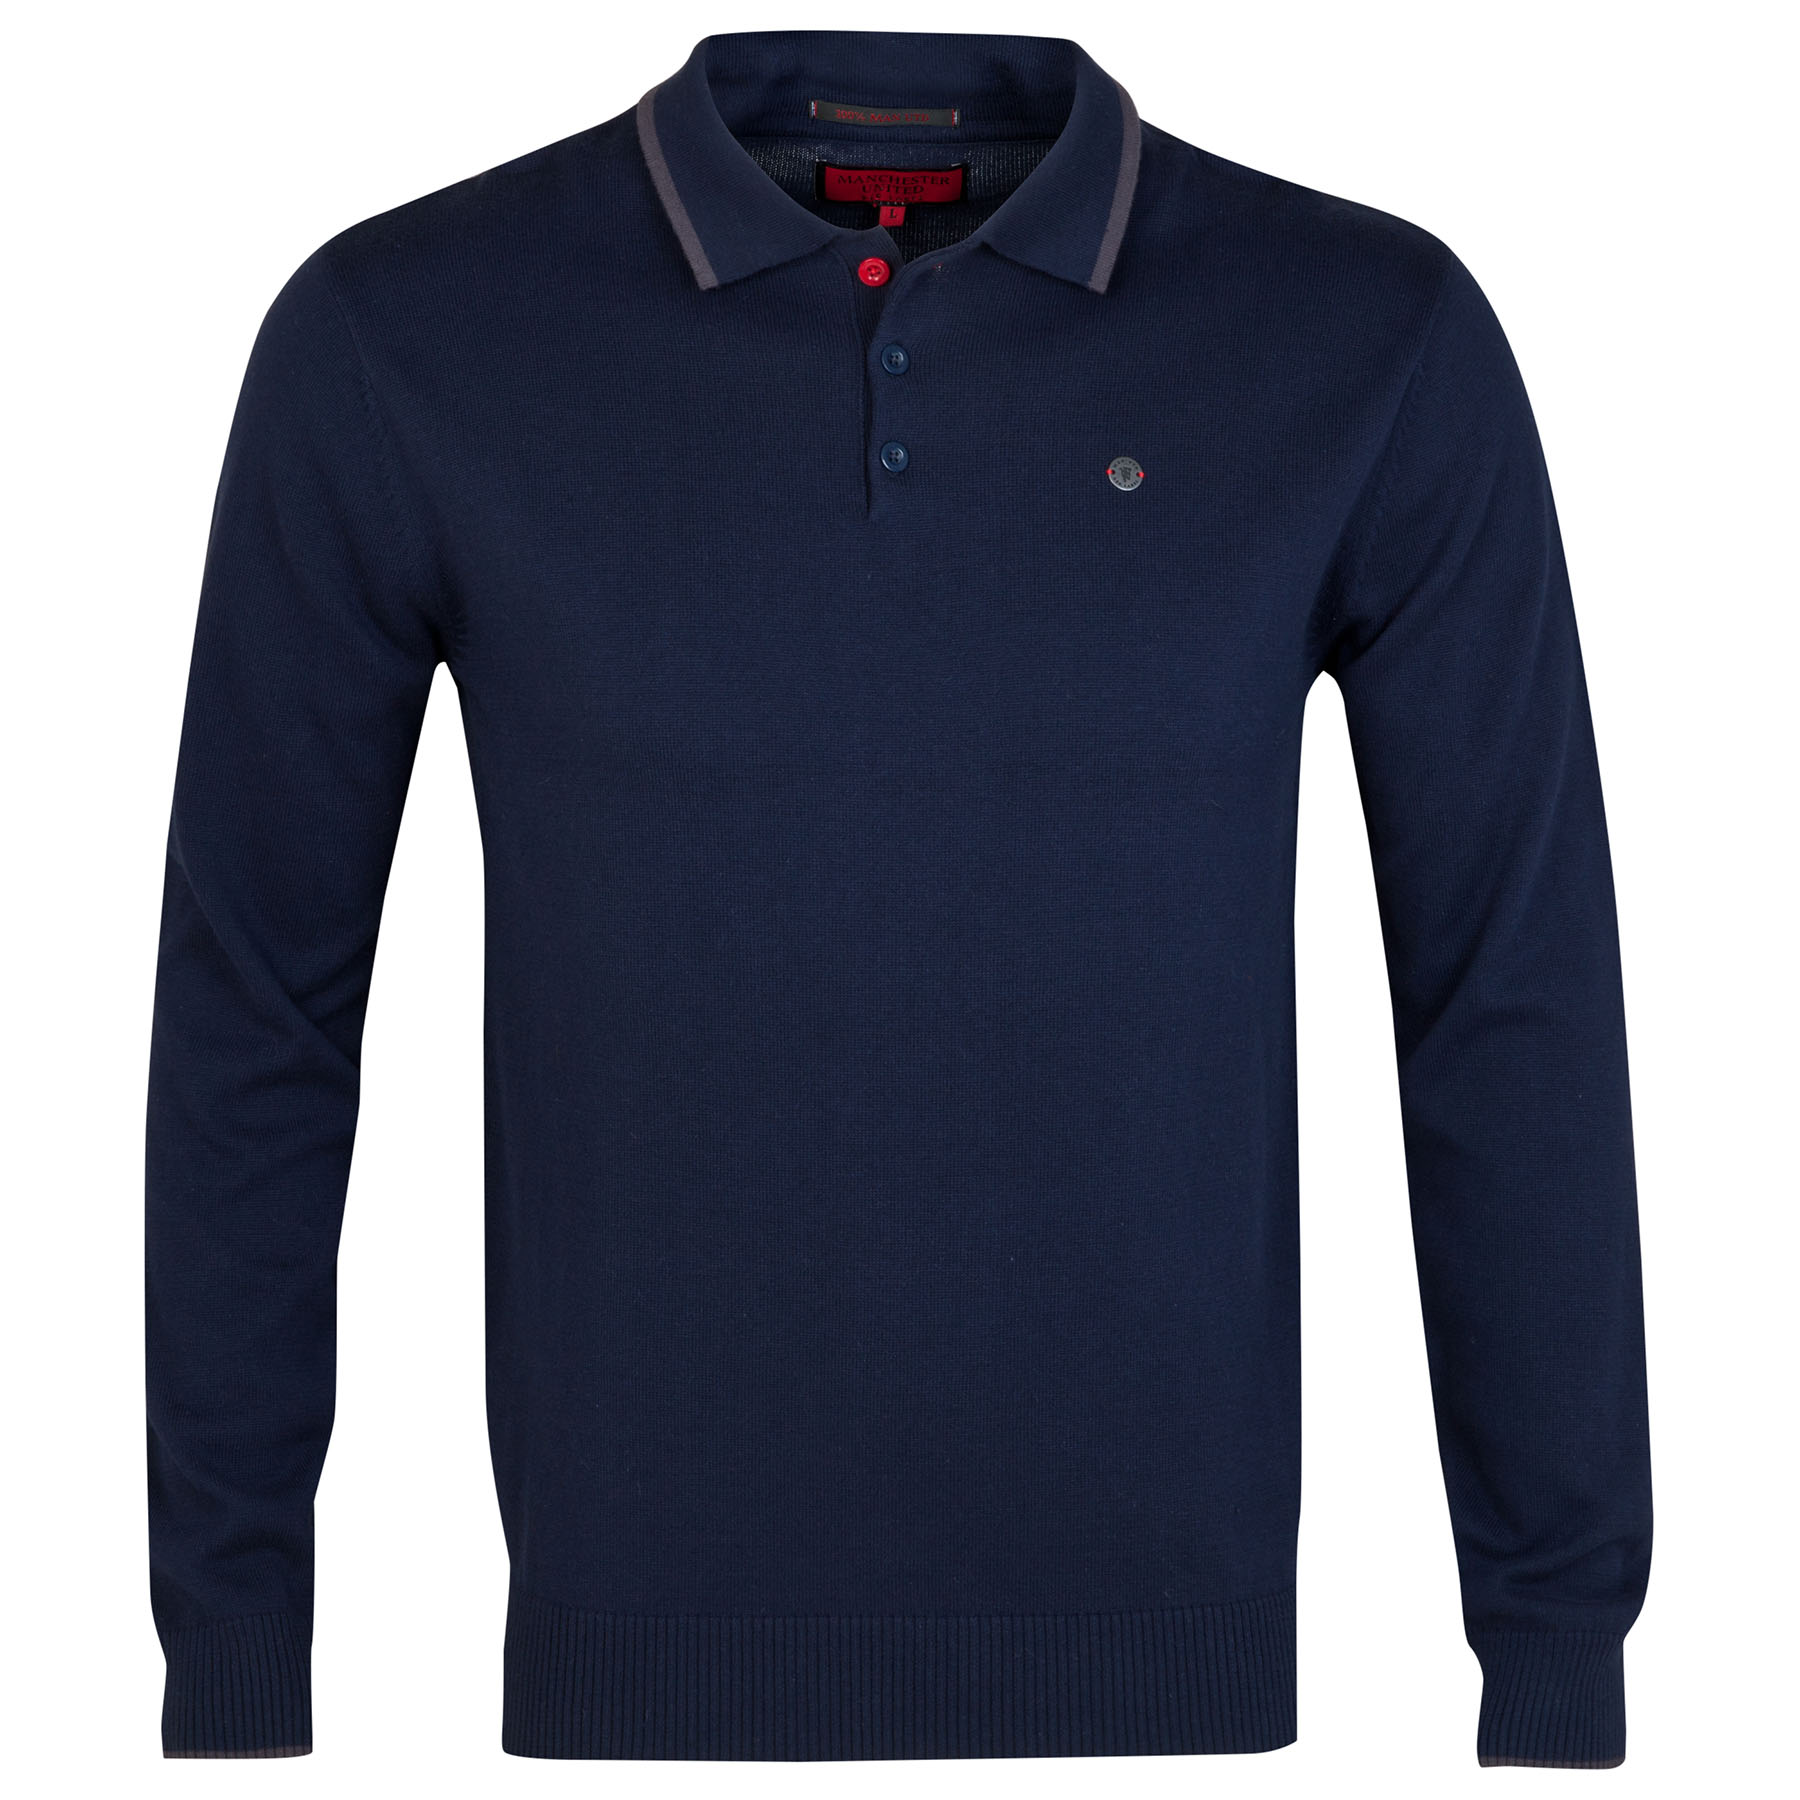 Manchester United Red Label Tipped Collar Knitted Polo Shirt - Navy - Mens